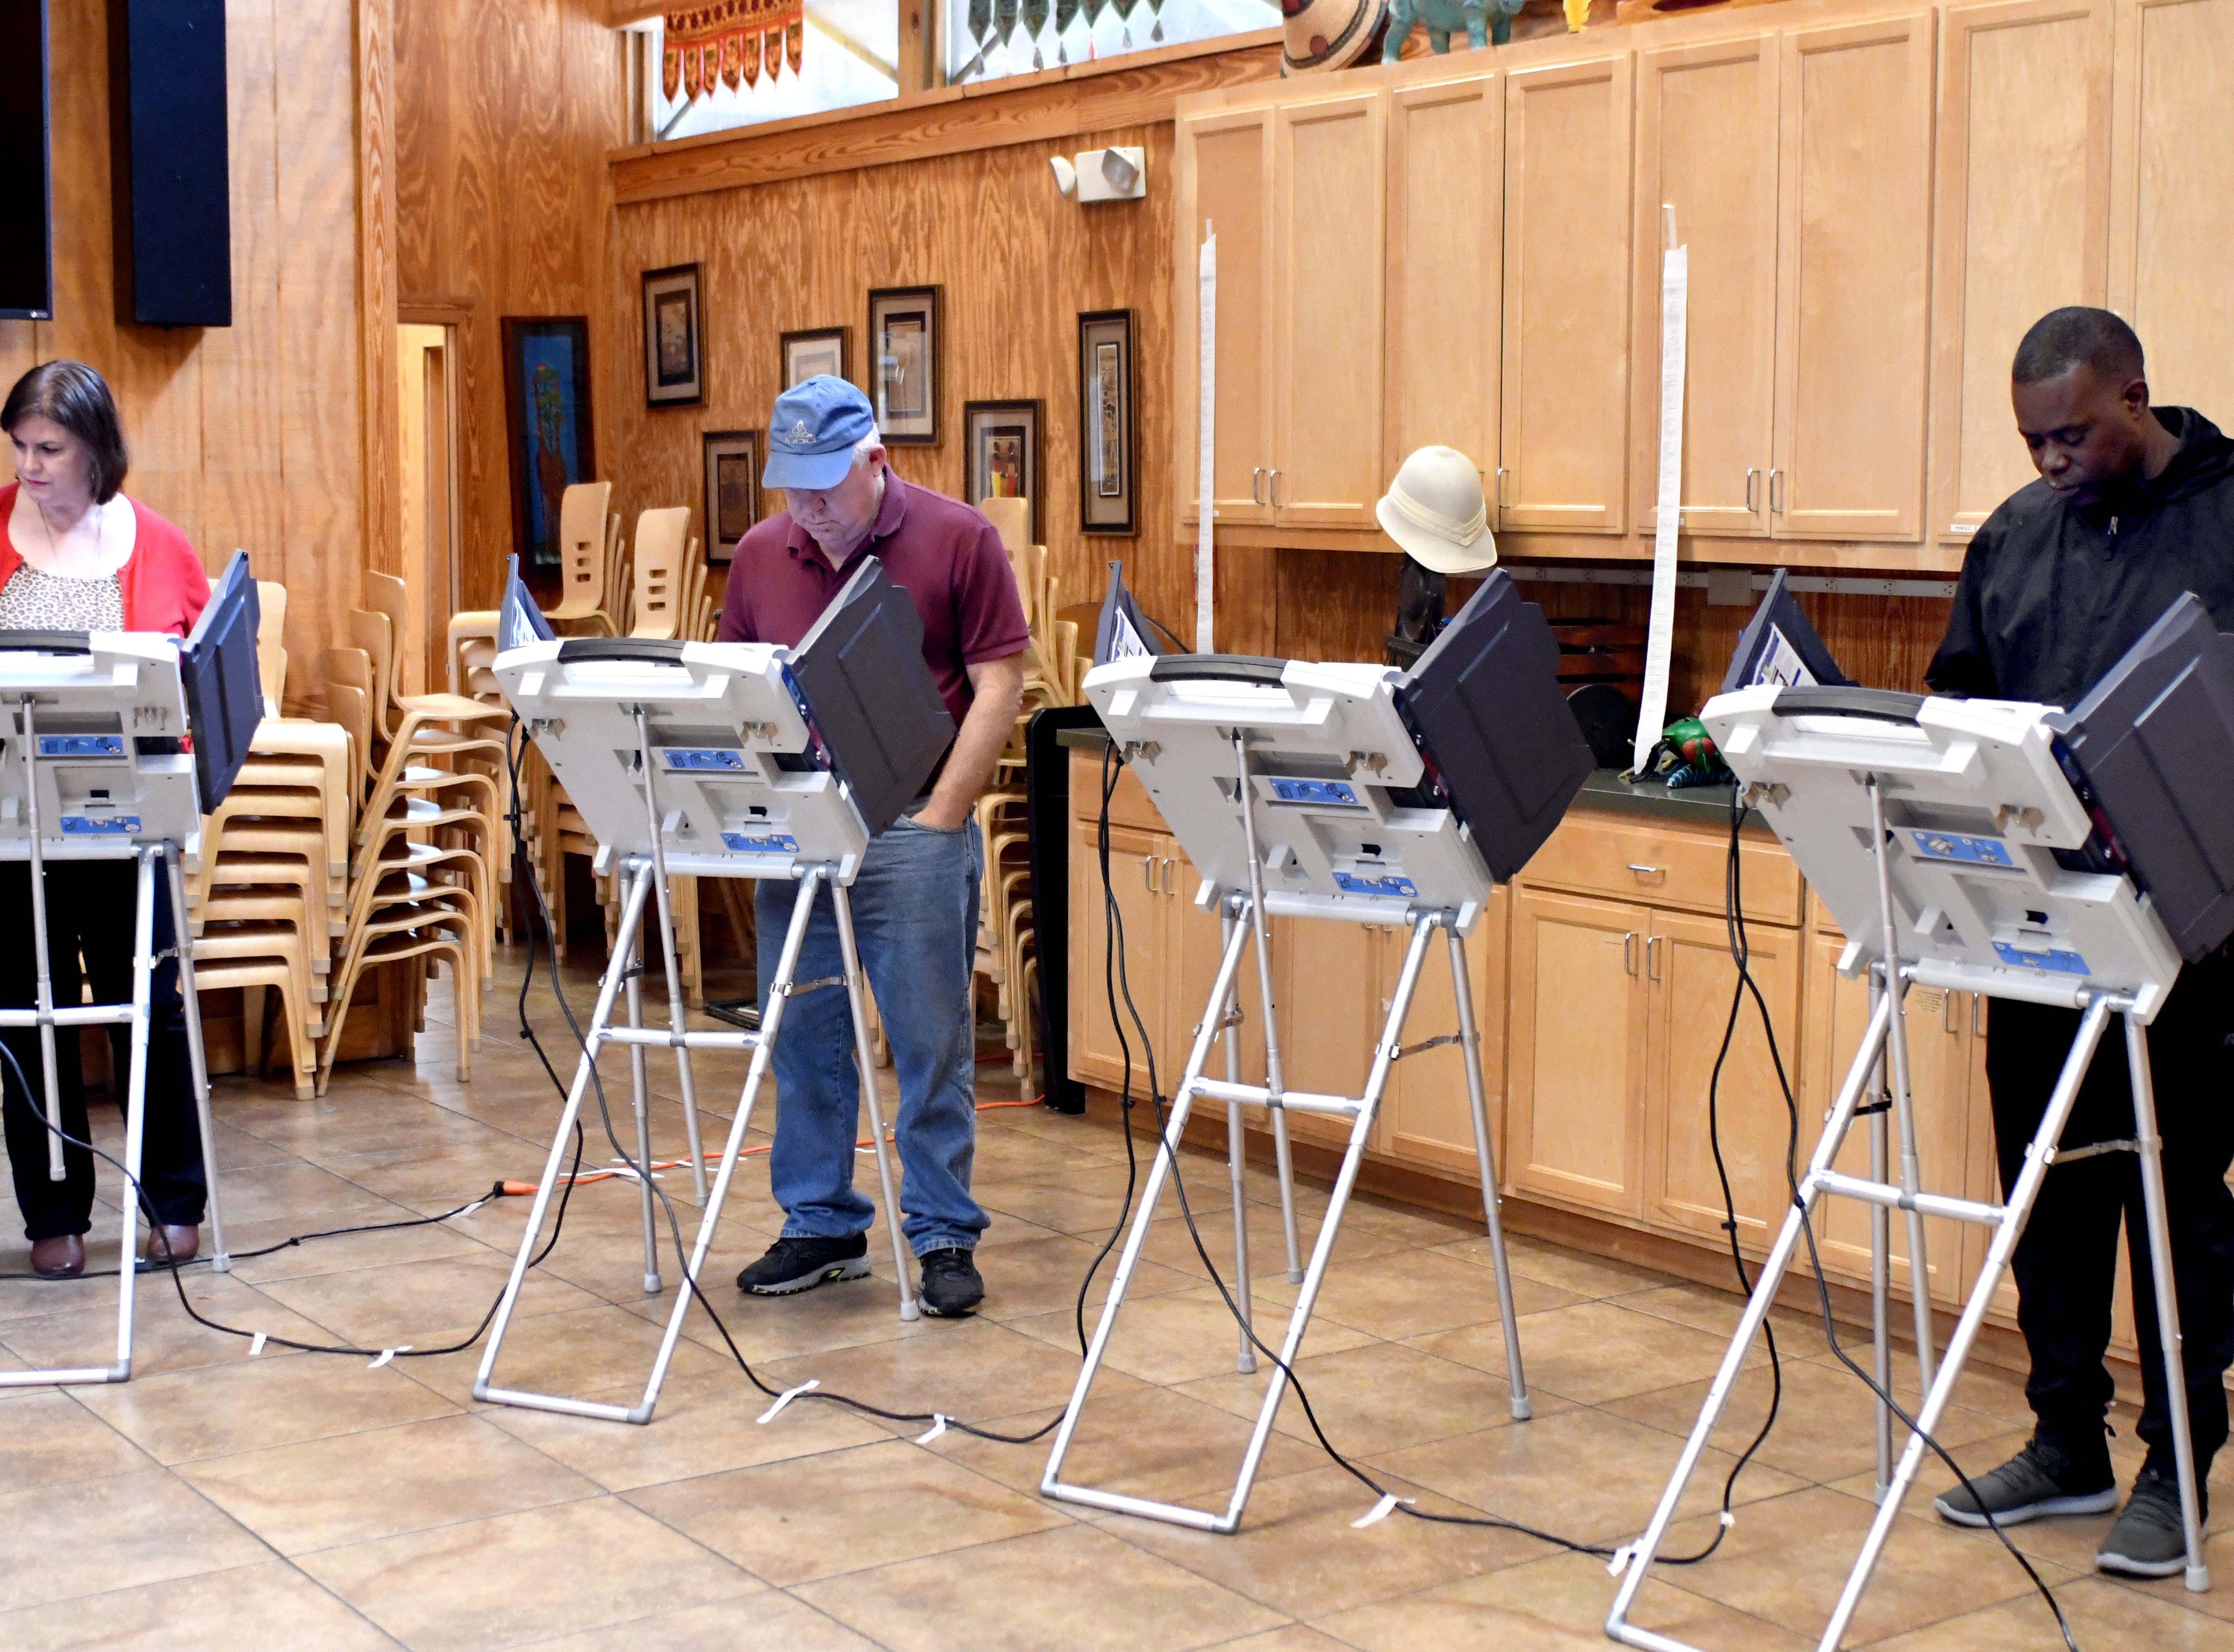 Hattiesburg resident cast their vote during the midterm elections at the Kamper Park precinct on Tuesday, November 6, 2018.